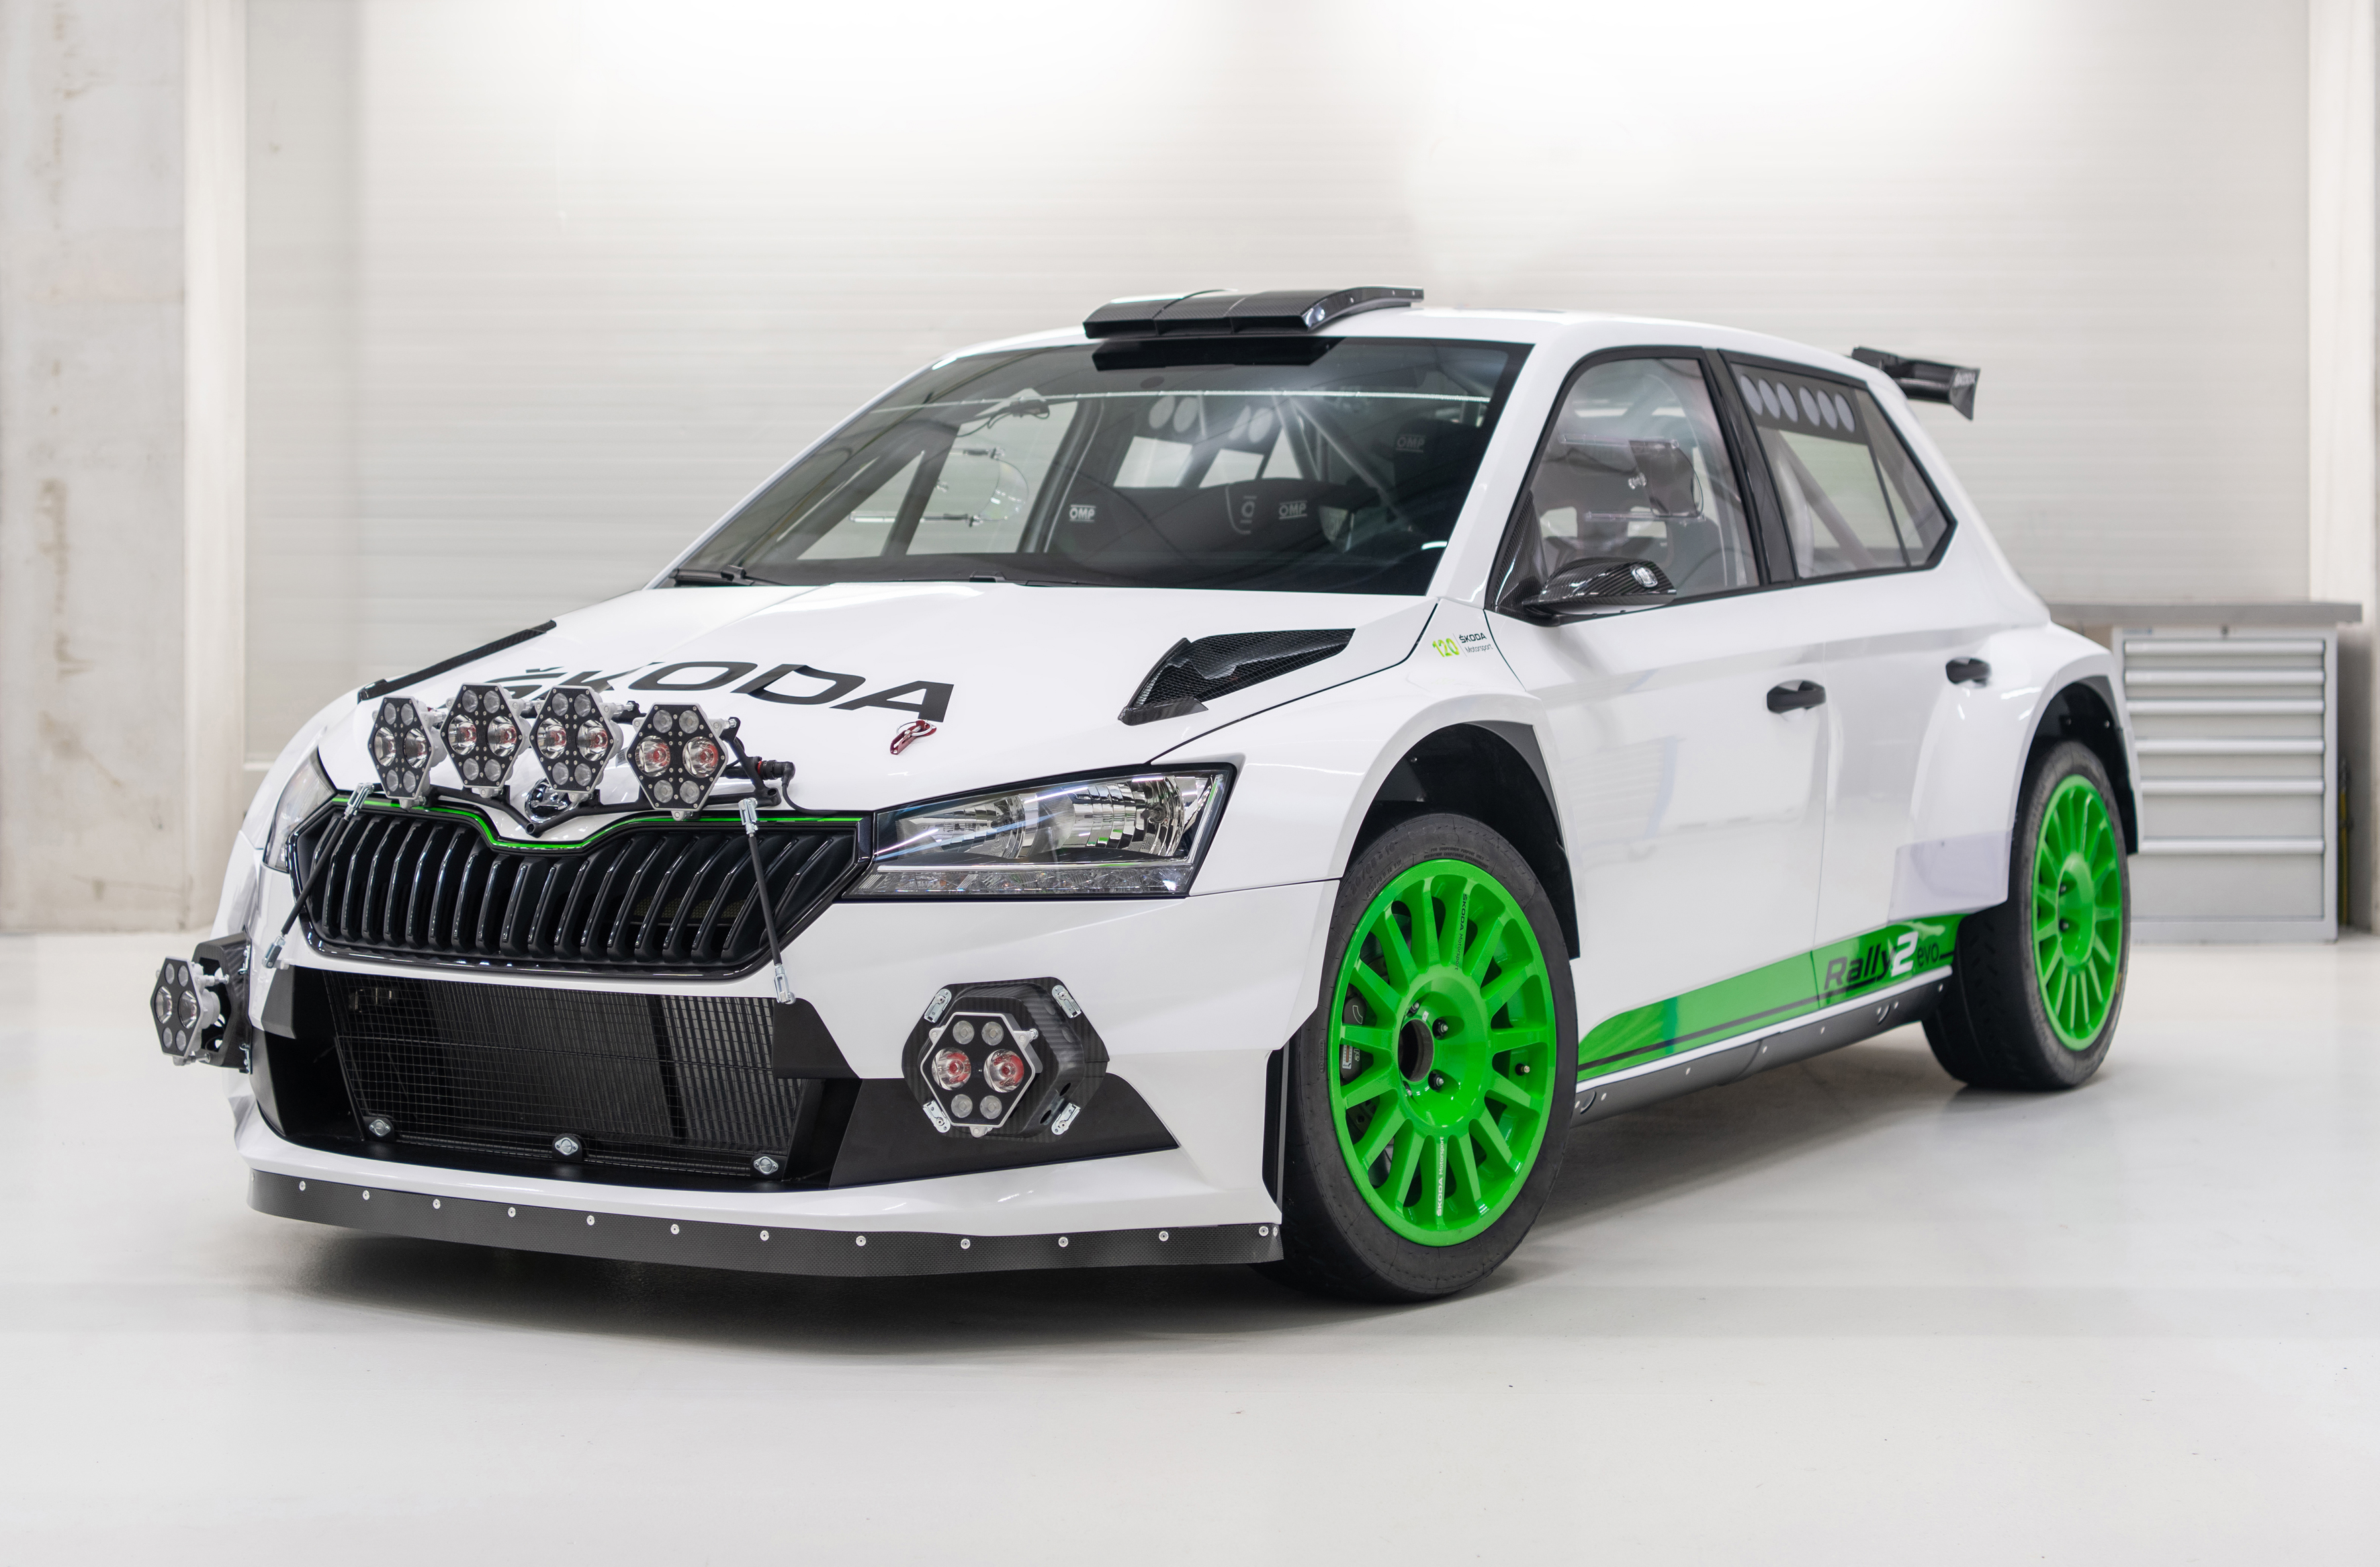 120 years in racing – SKODA Motorsport celebrates with limited SKODA FABIA Rally2 evo Edition 120 - Image 3